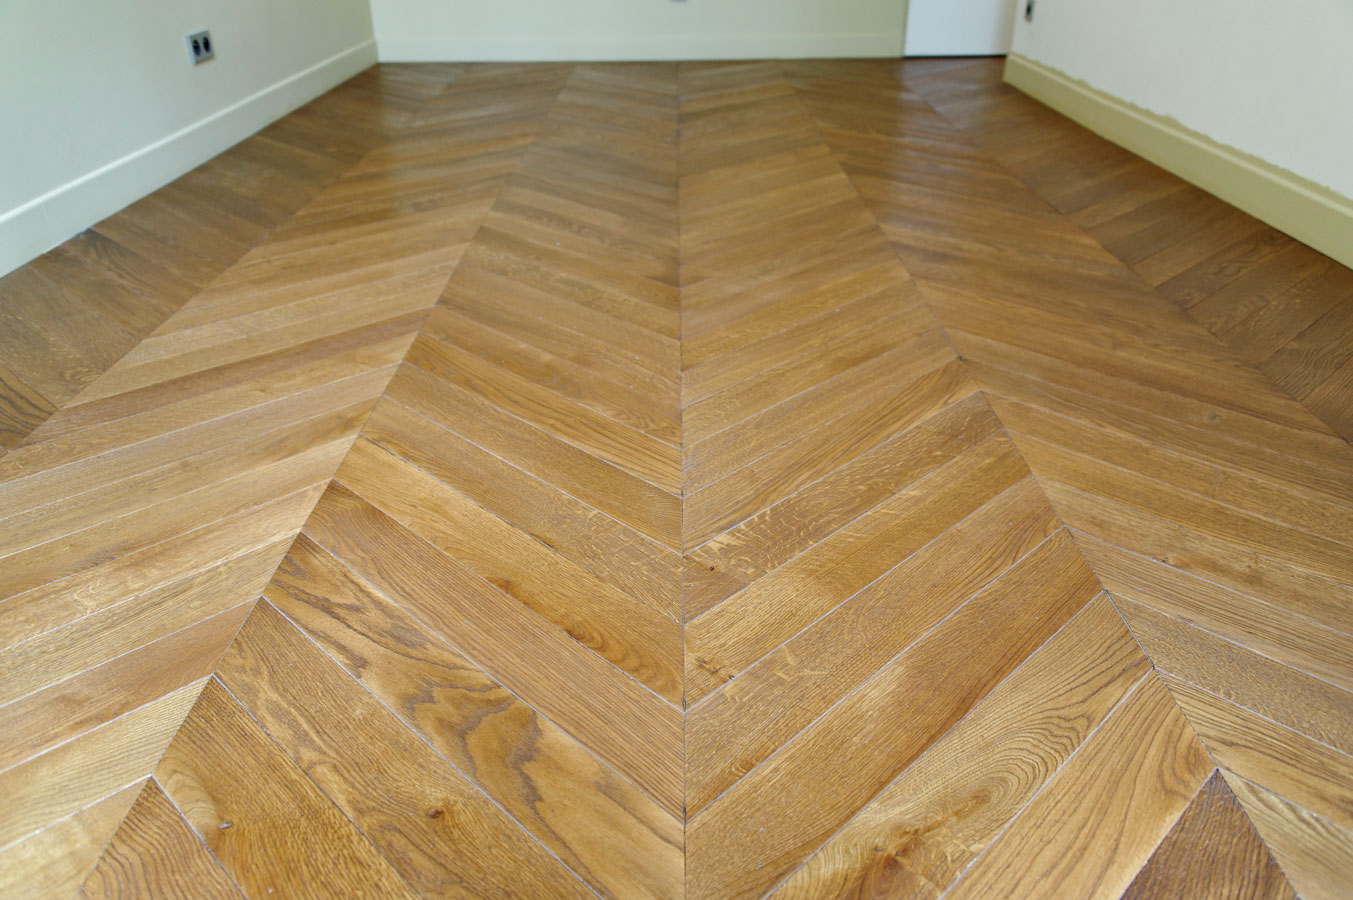 Exemple n°3 parquet Point de Hongrie